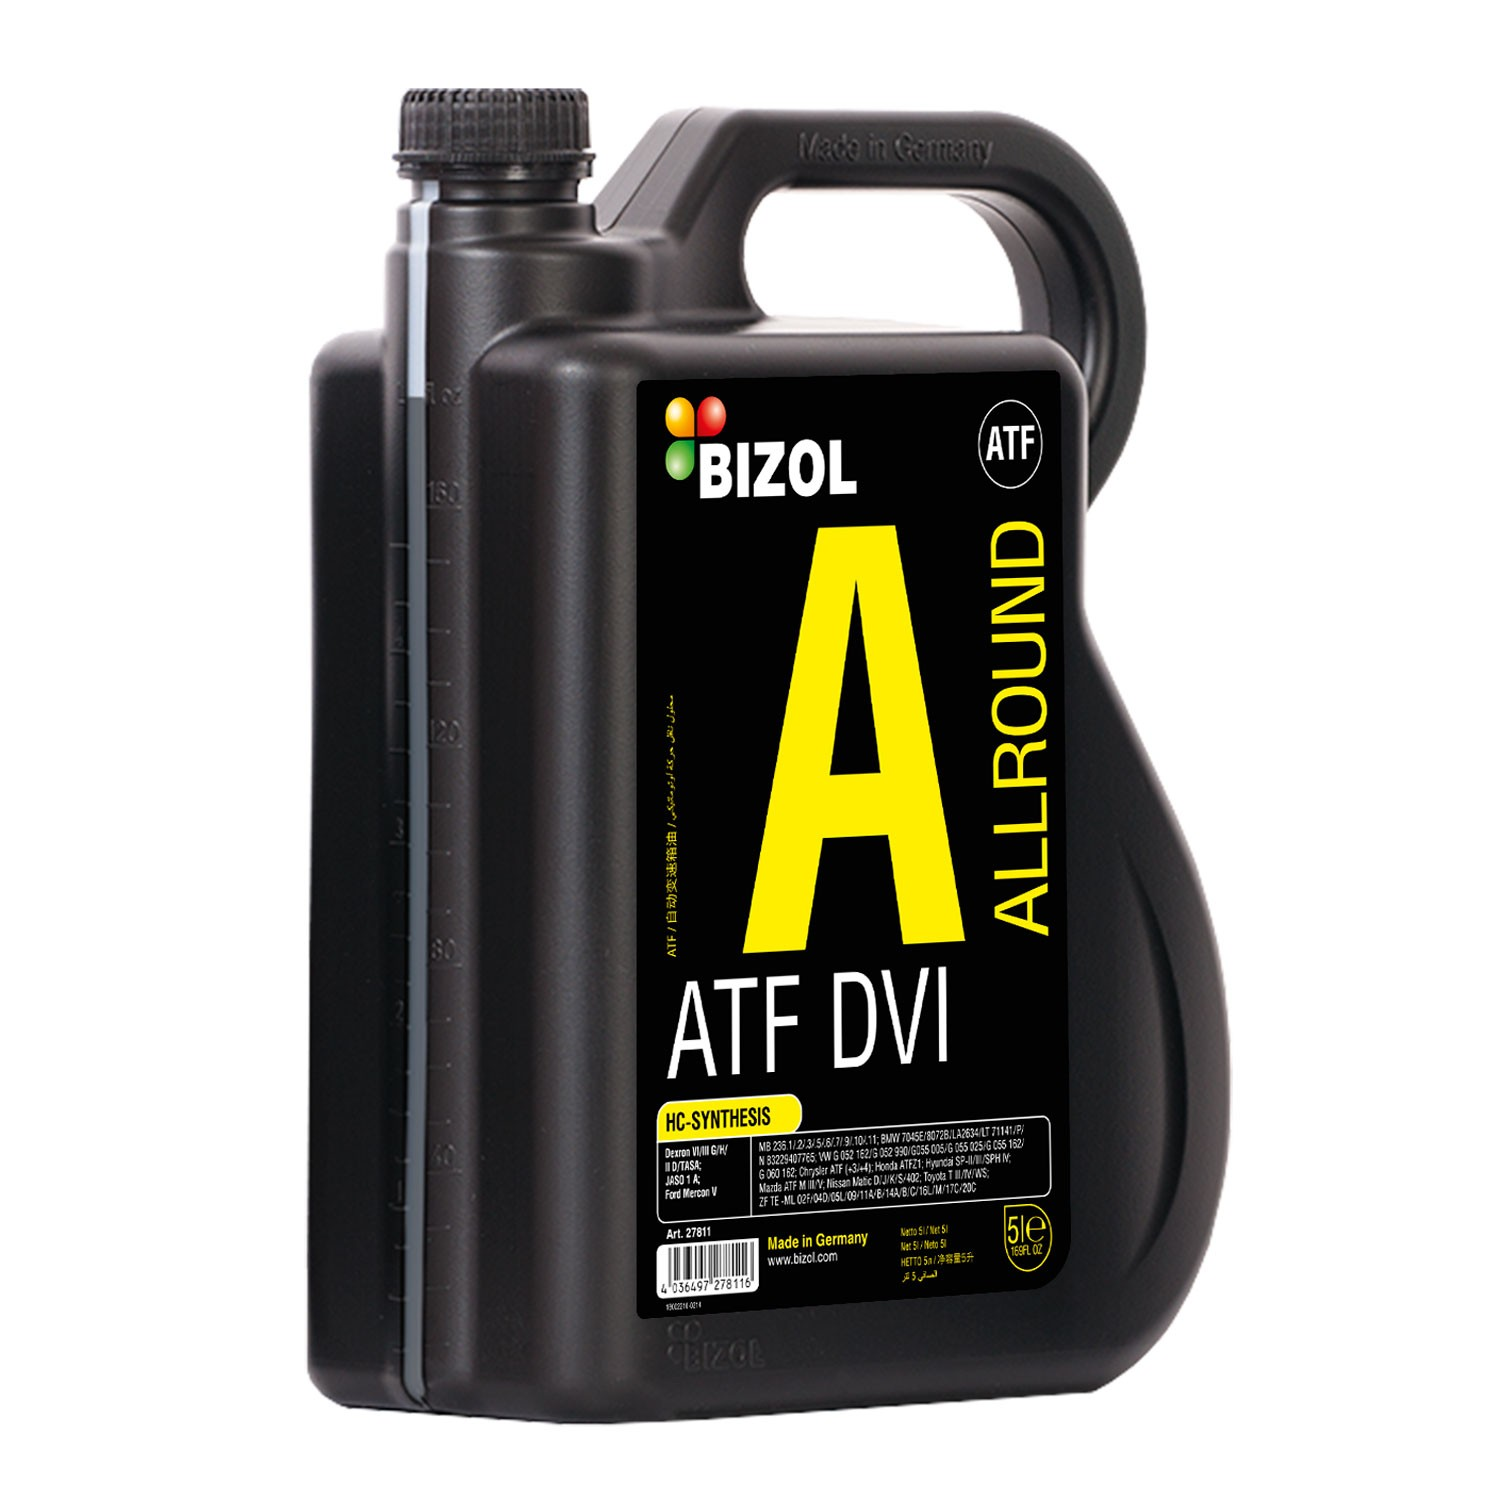 BIZOL Allround ATF DVI